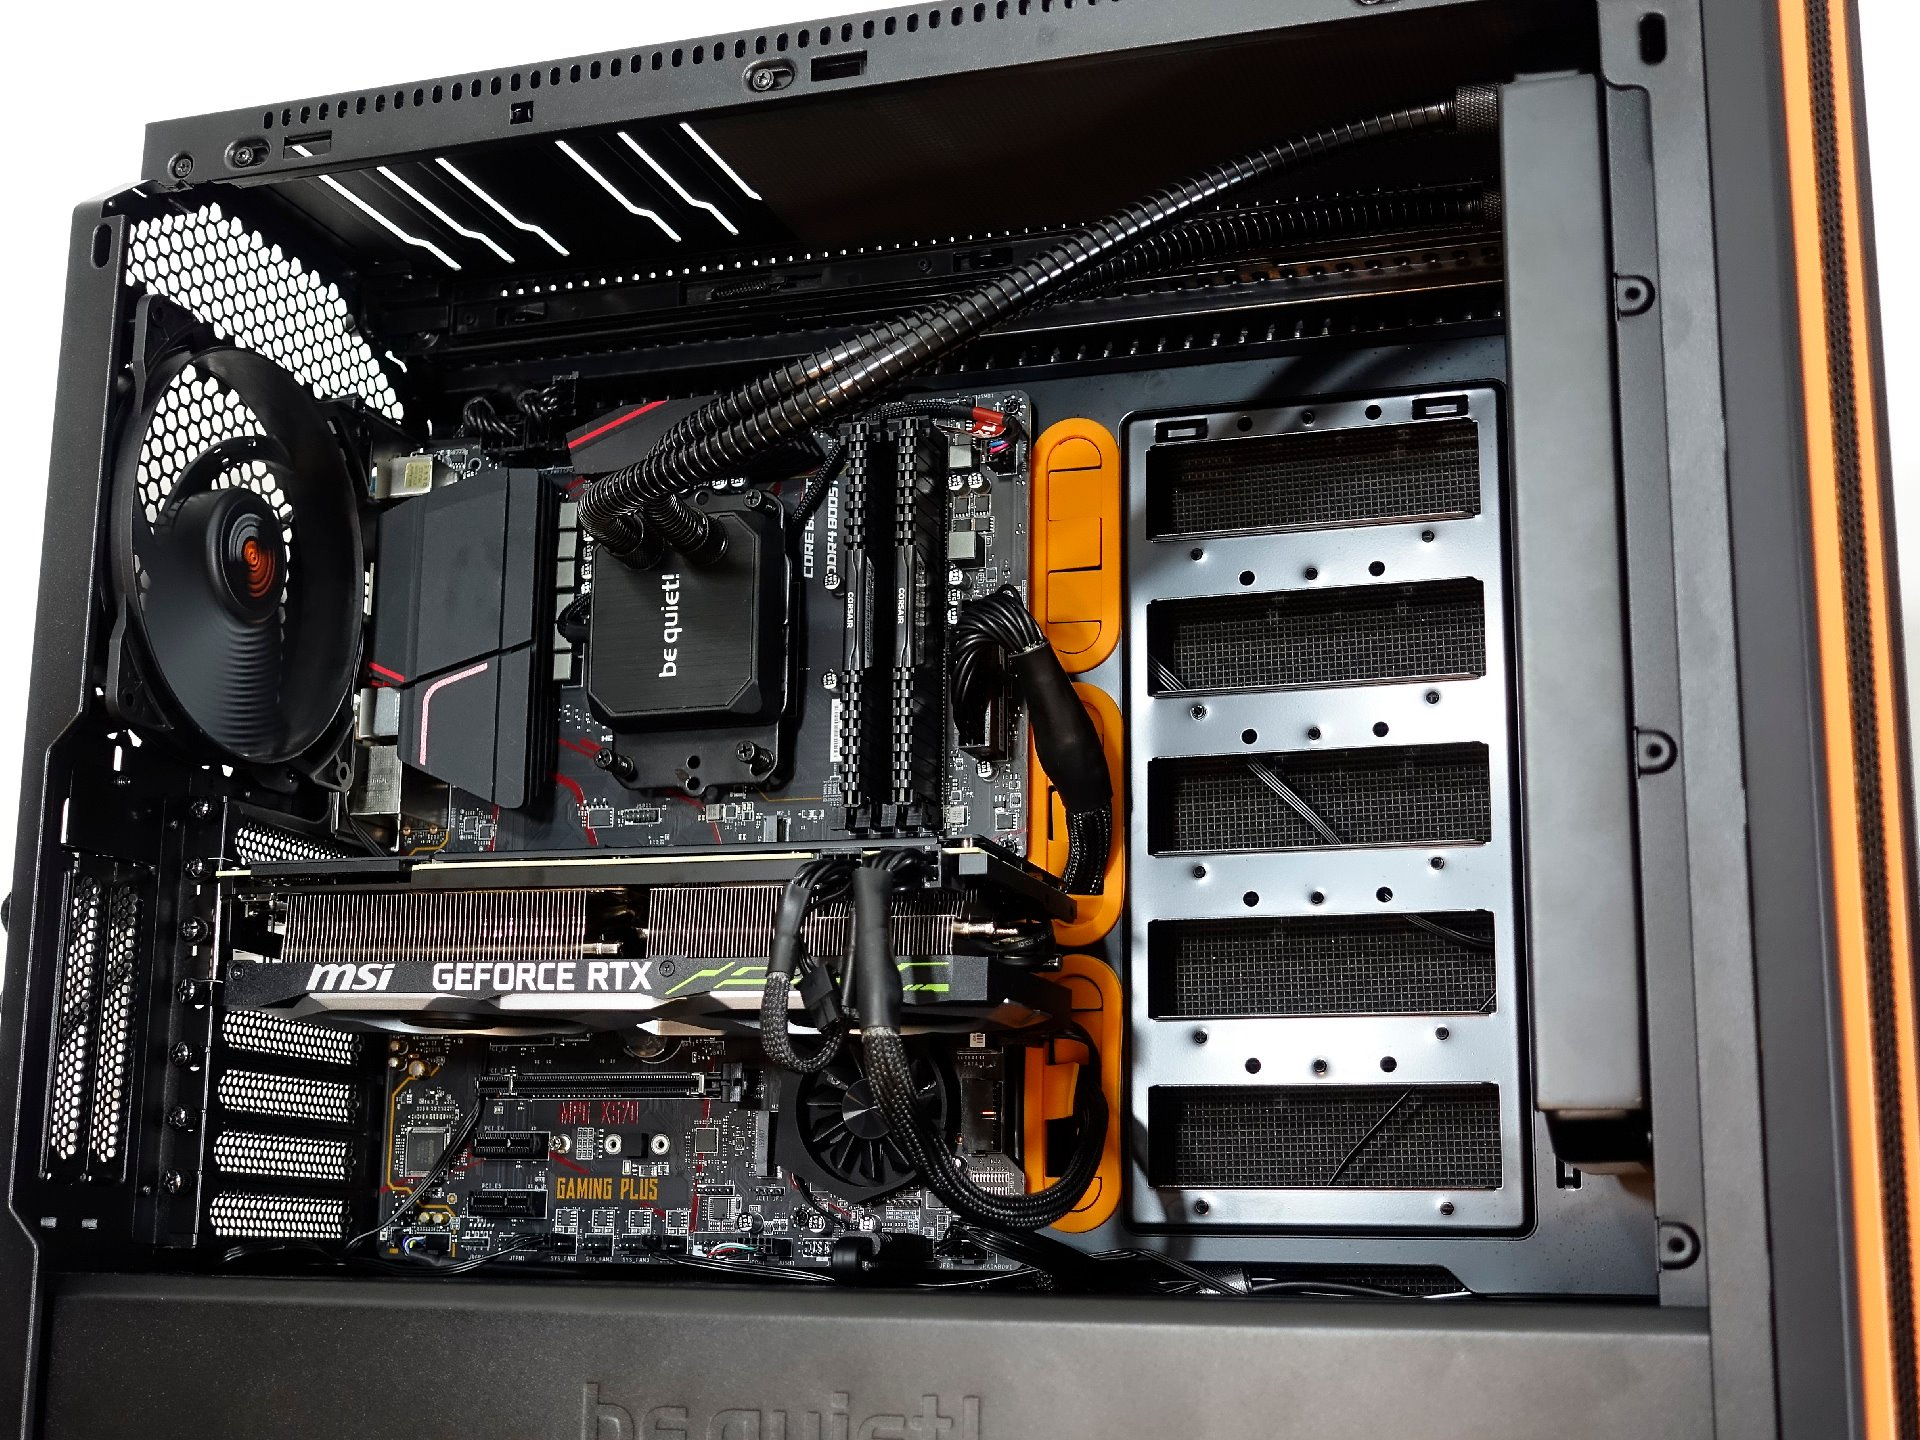 Image 14 : [MàJ] PC gaming Tom's Hardware : OC et guide d'optimisation X570 / 3600X